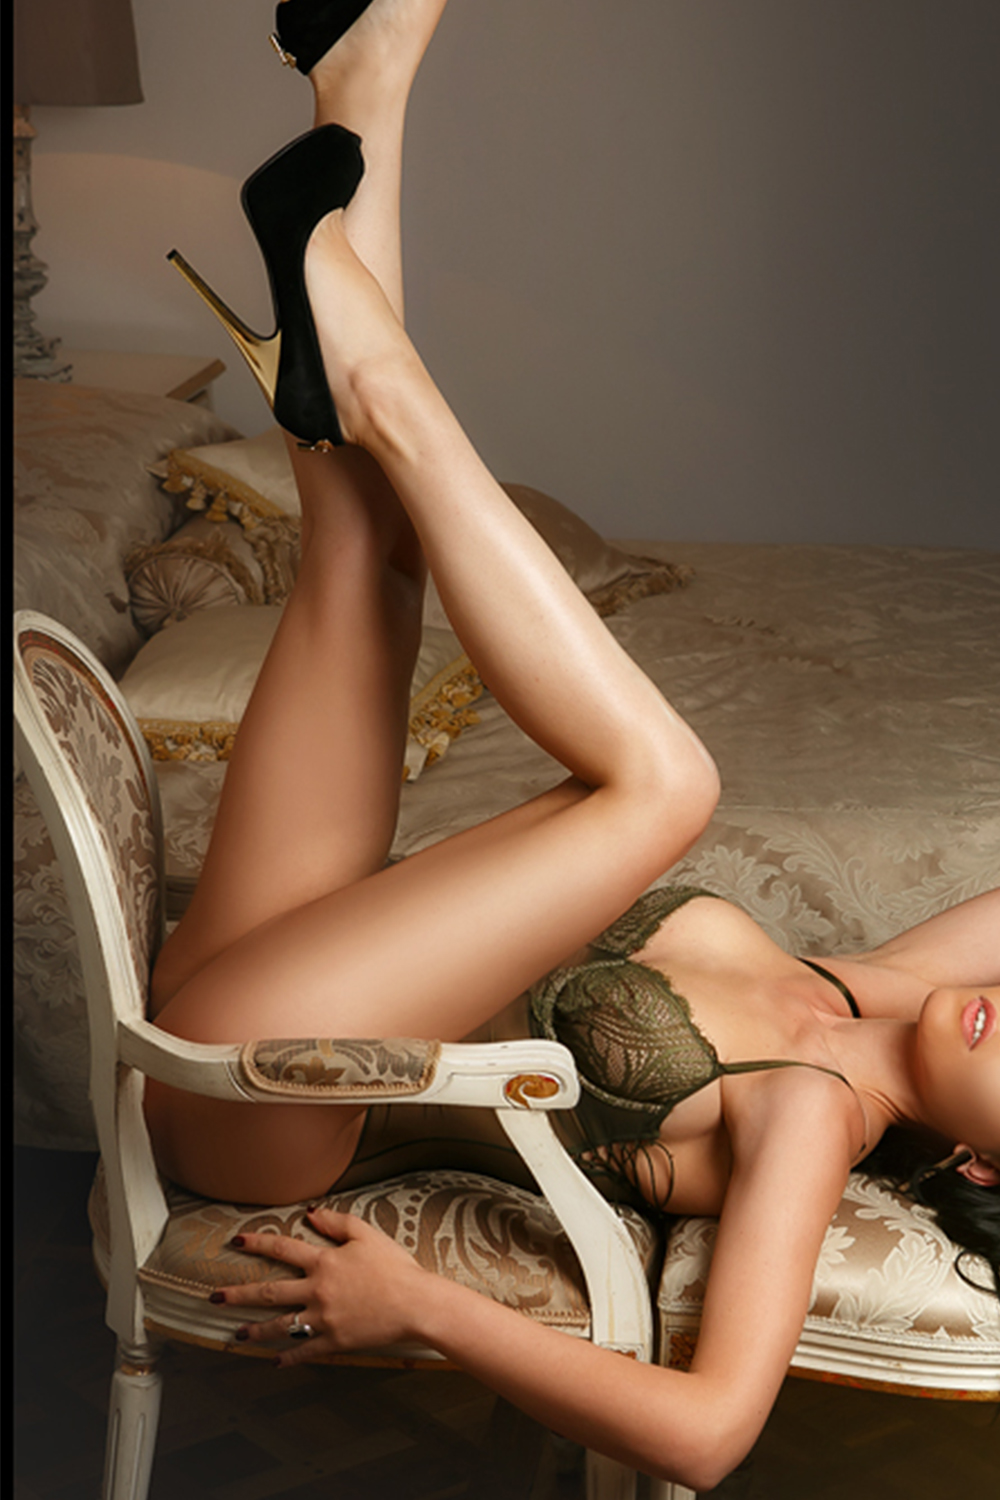 Vip escorts europe Prague Escorts, Find your escort in Prague, MySexyPrague